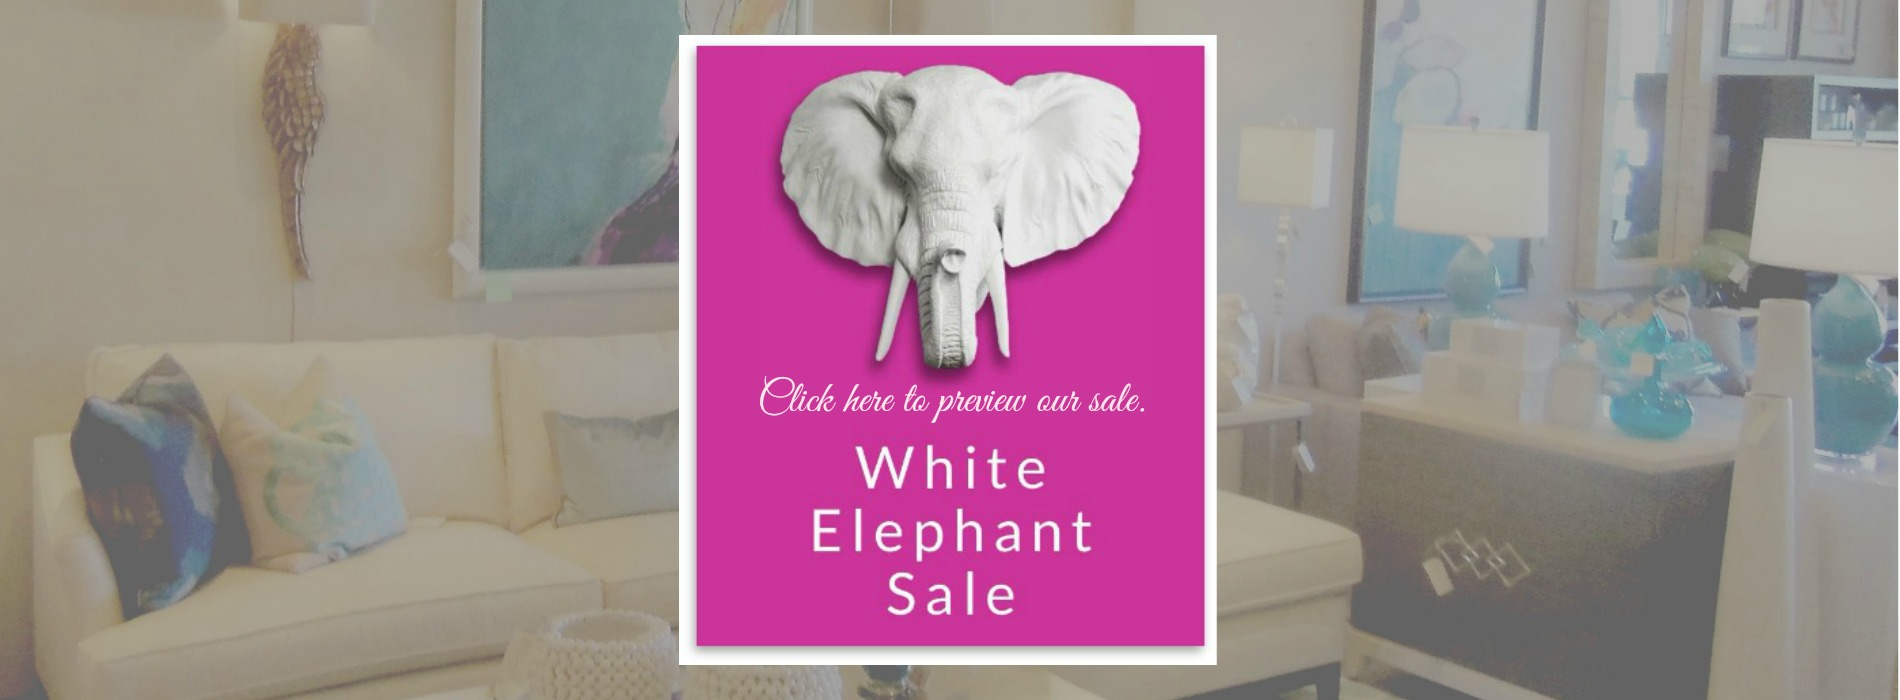 glo-white-elephant-sale